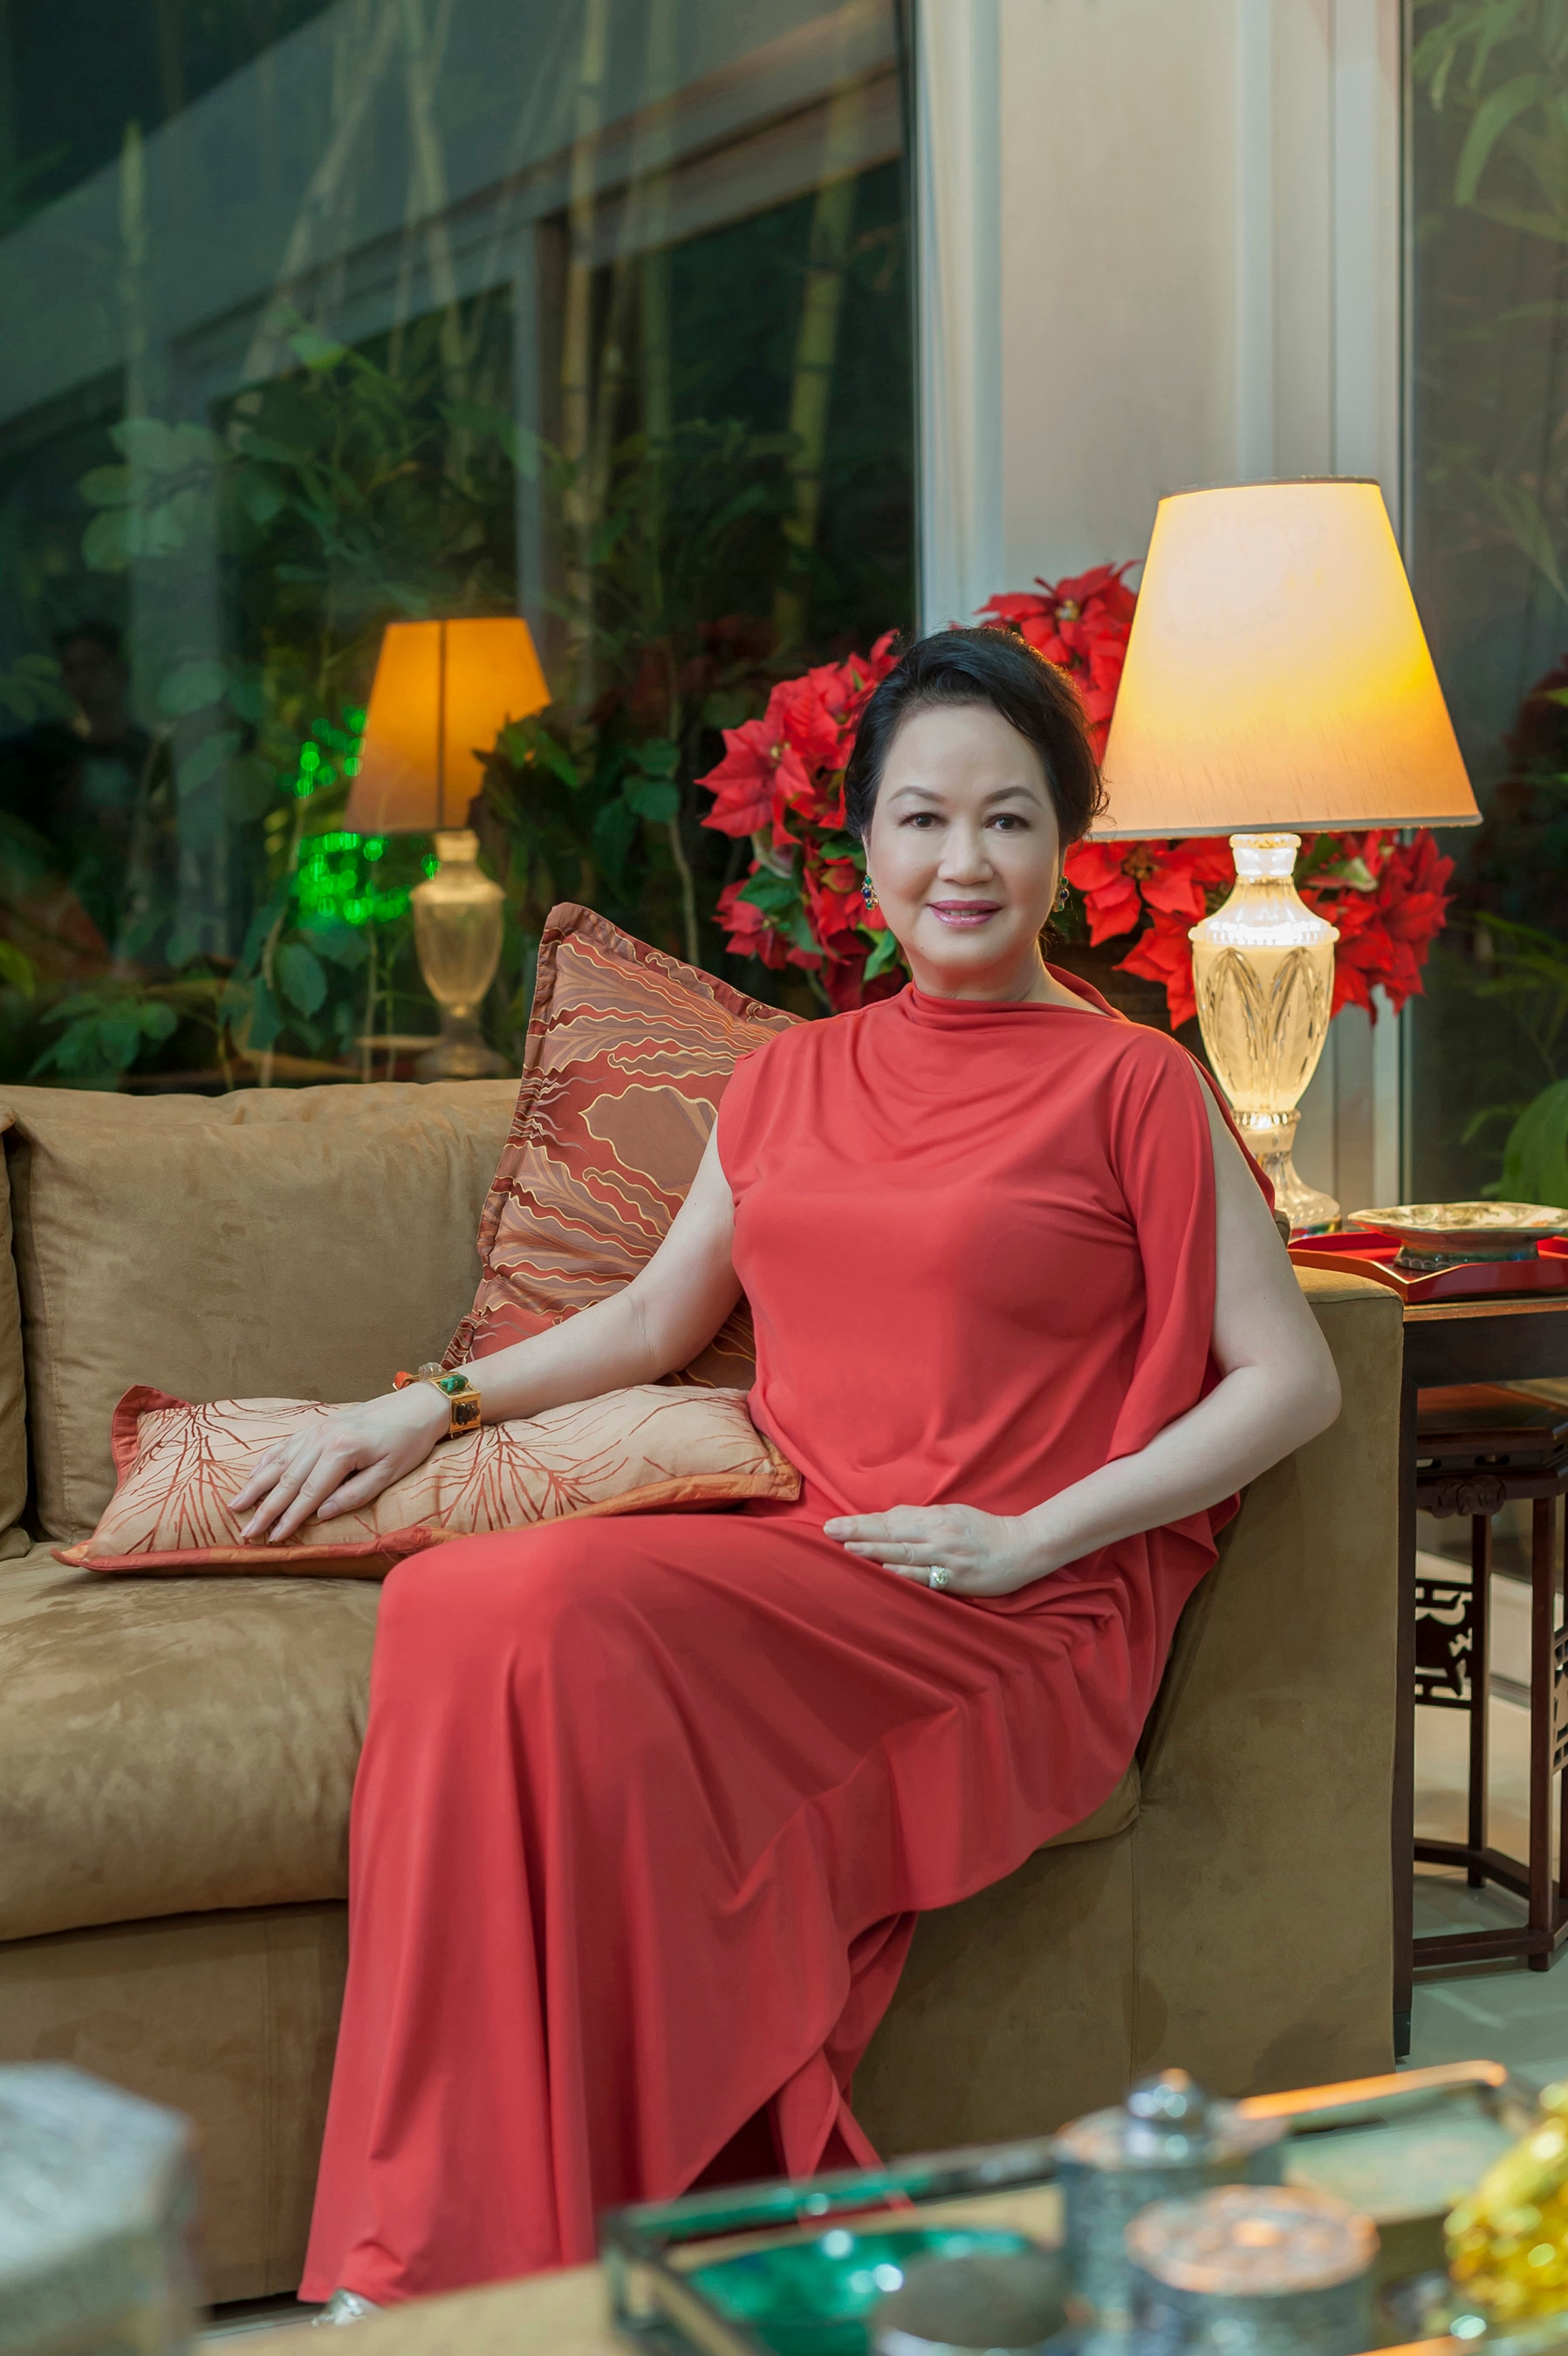 Frannie Aguinaldo-Jacinto is happy to have family heirlooms in their Christmas set ups. The porcelain was handpicked by her father, while many ornaments were also passed on by her mother.